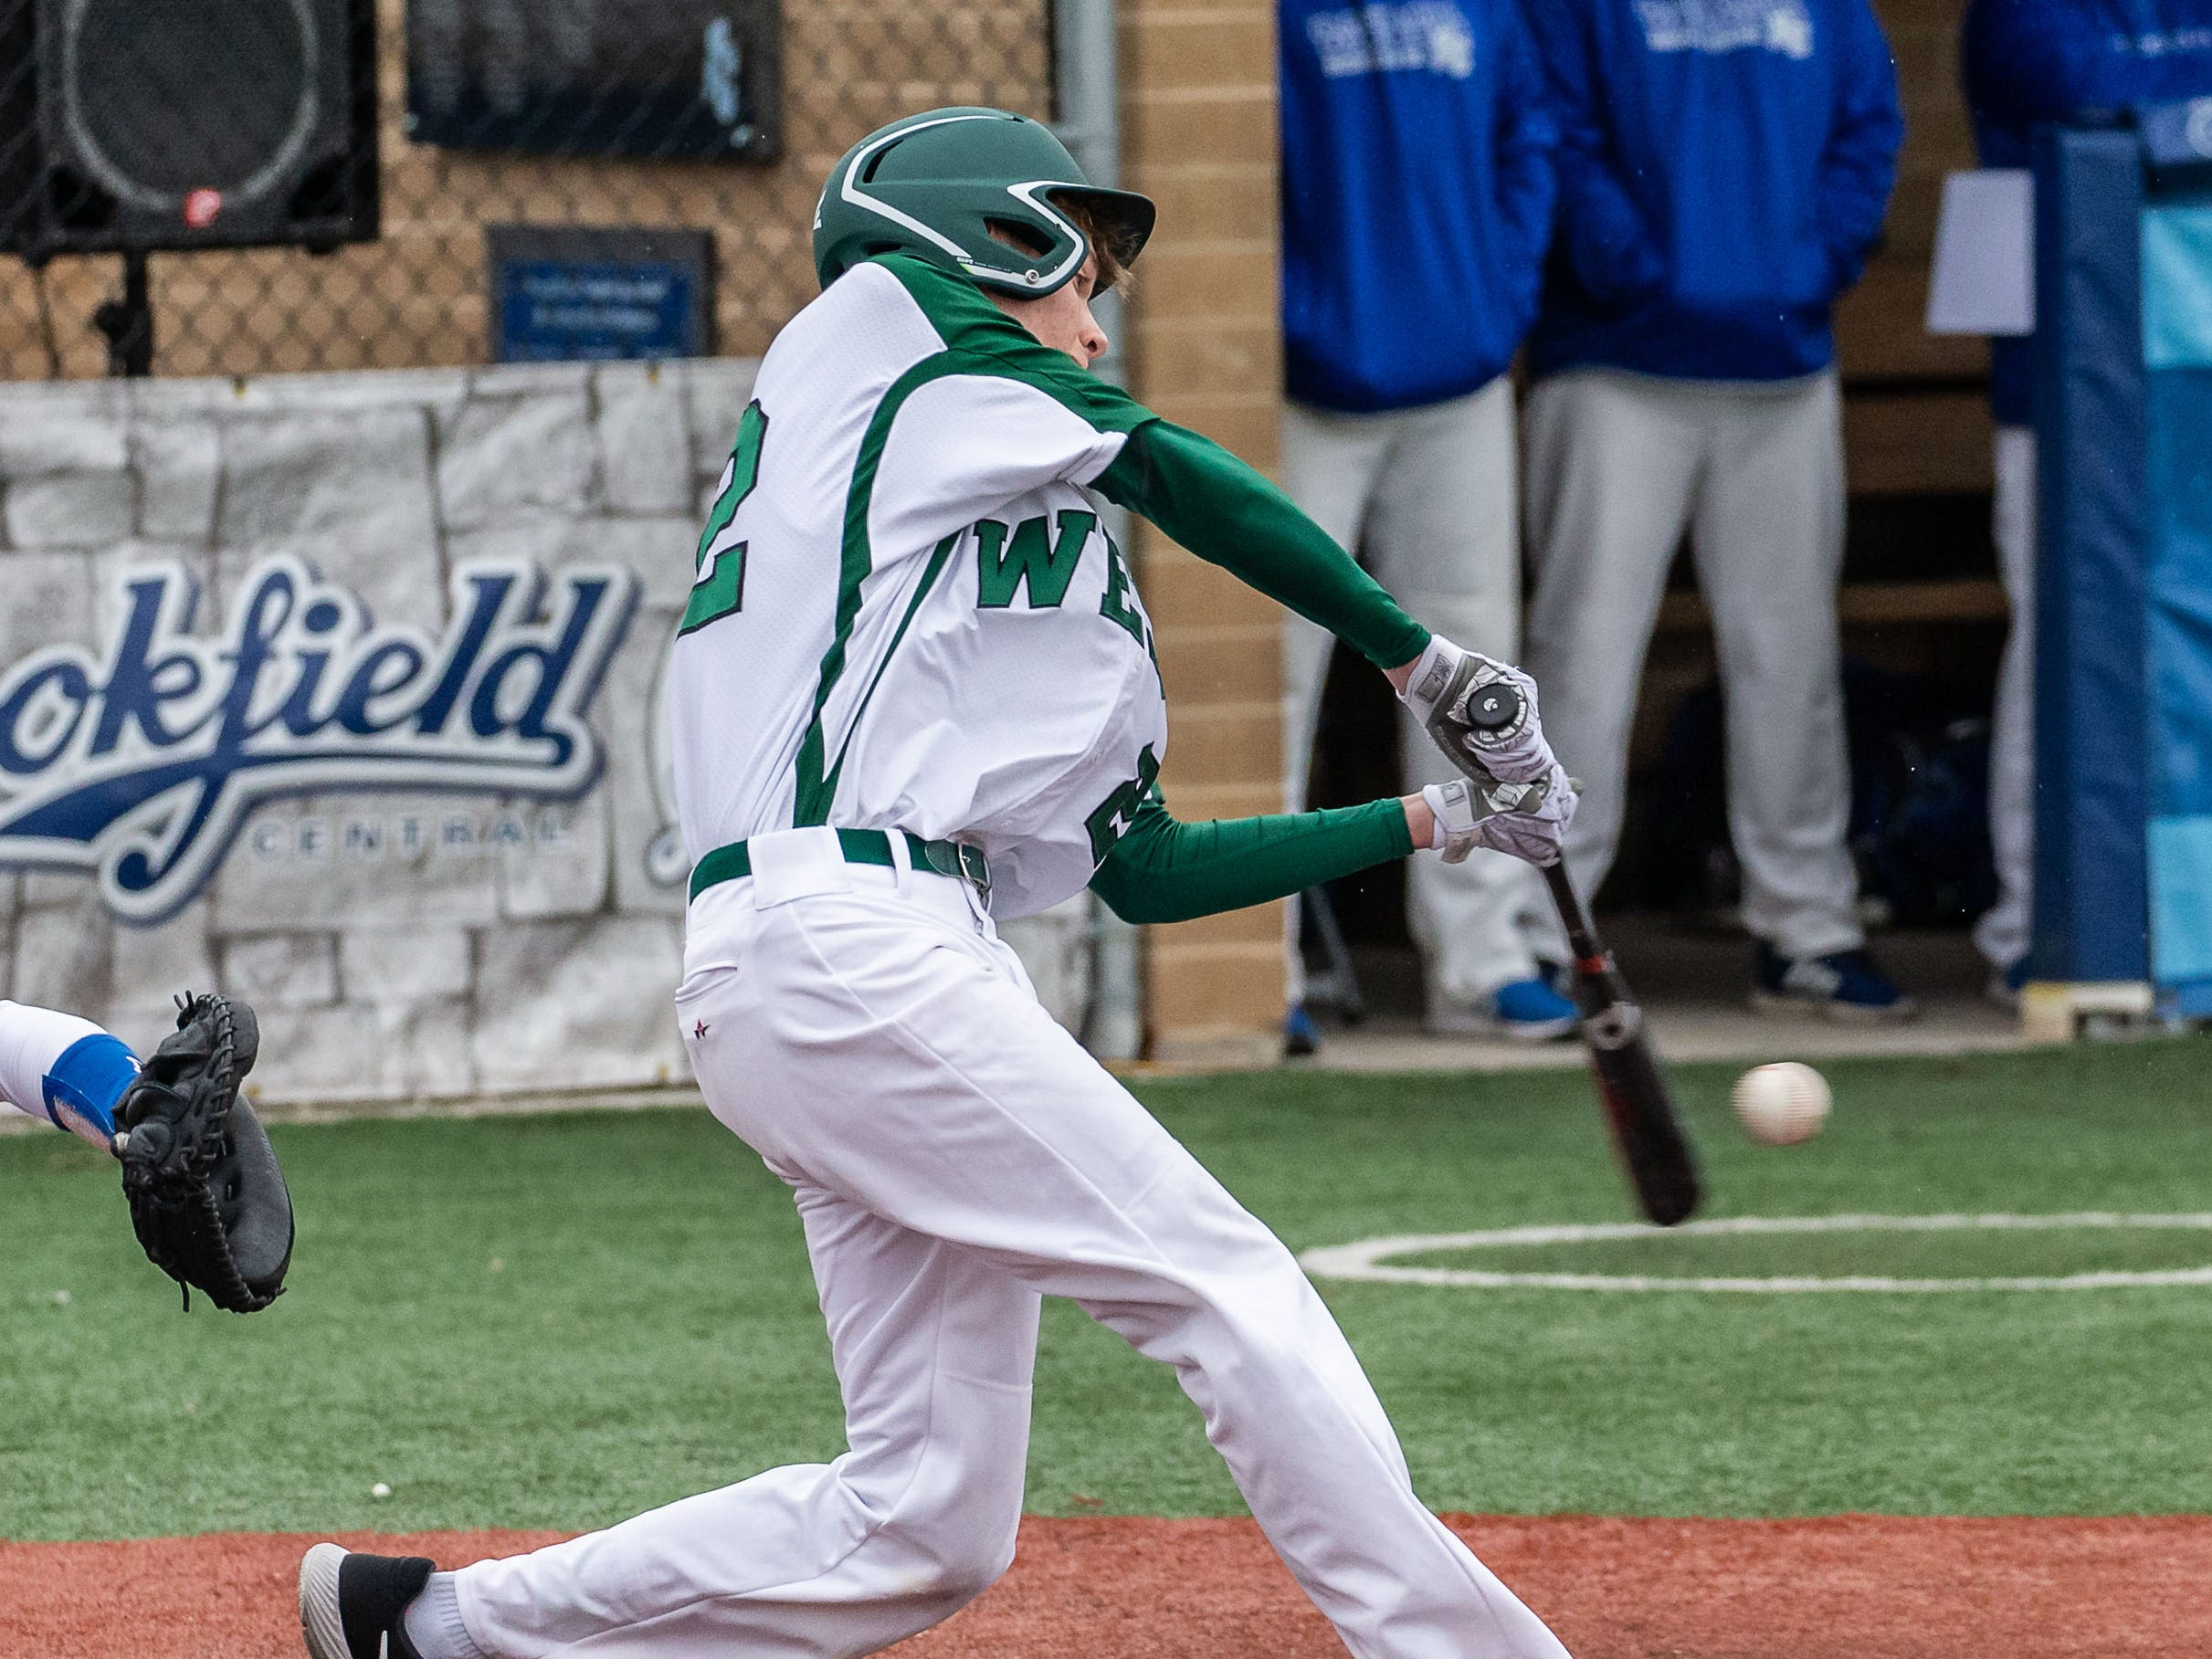 Wauwatosa West's Mitch Fassbender (22) connects during the game at Brookfield Central on Thursday, April 4, 2019.